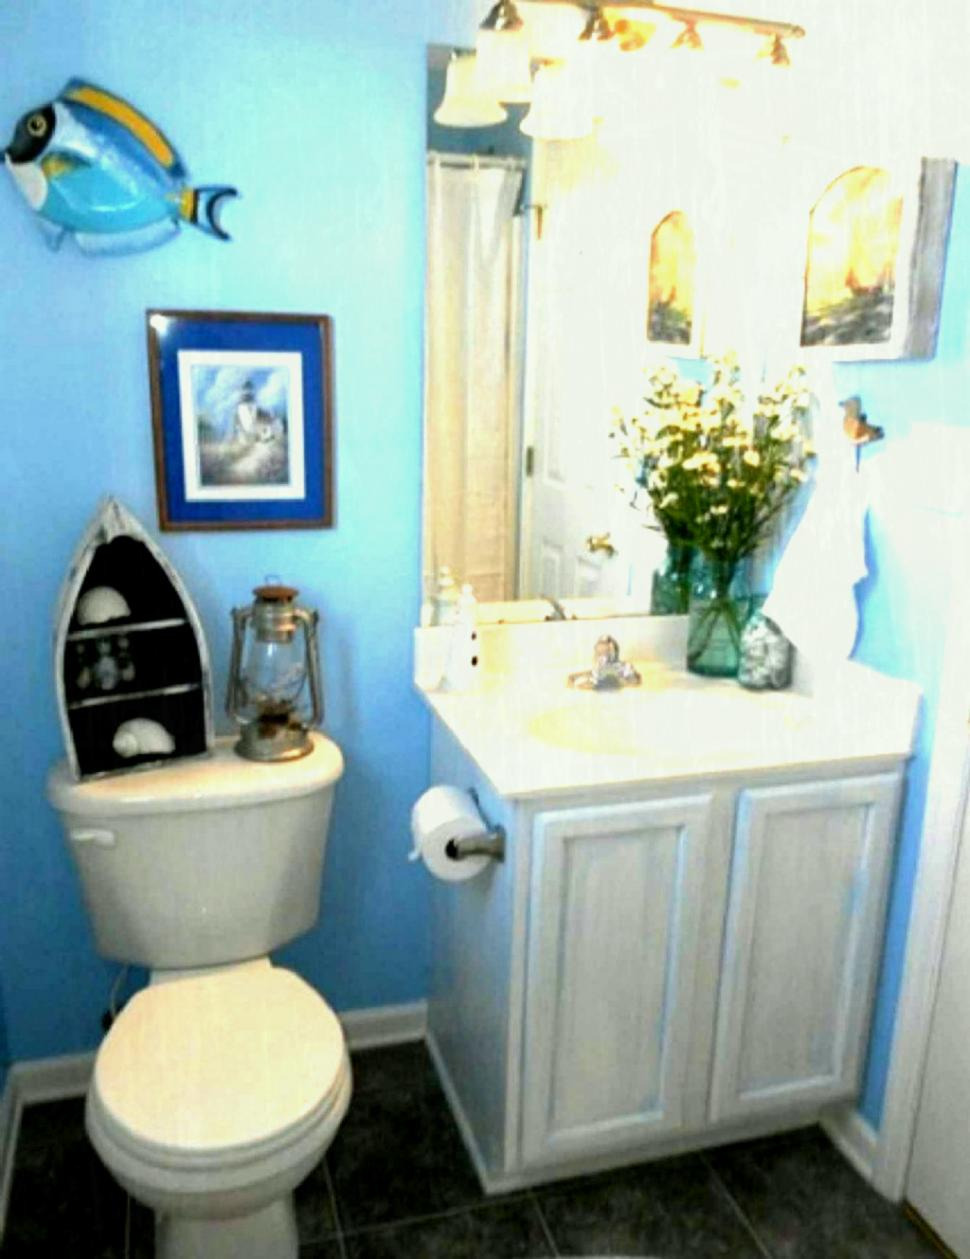 Bathroom Decorating themes Elegant Bathroom Different themes Ideas for Decorating theme with